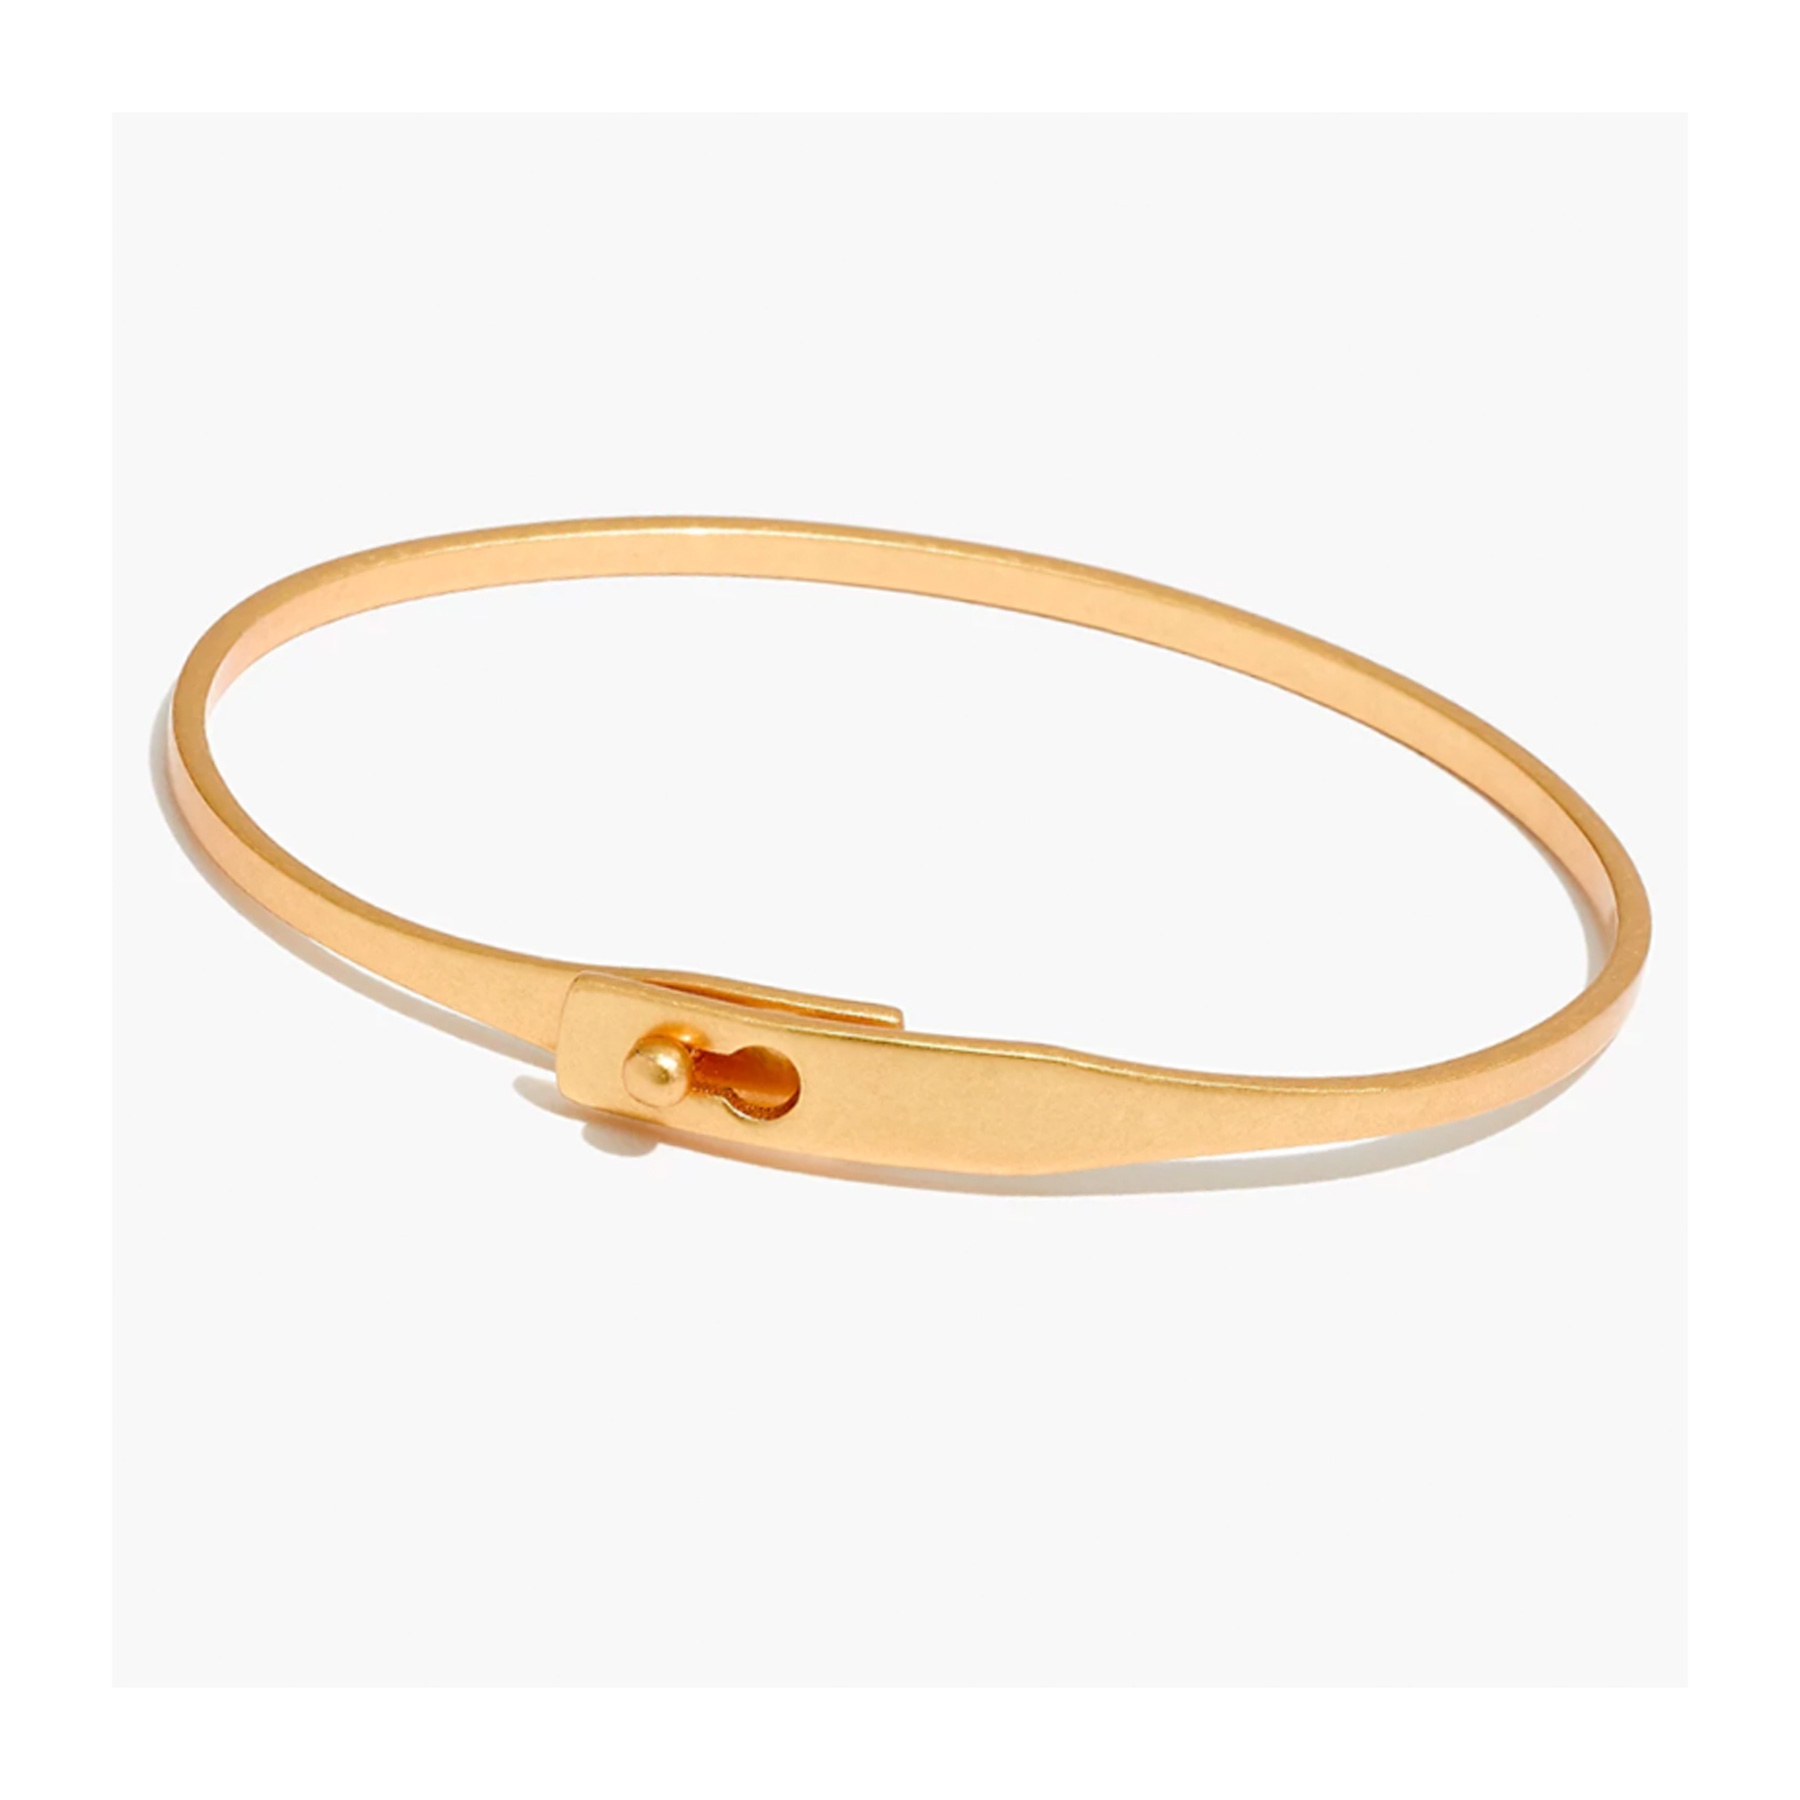 Cheap Christmas Gifts 2020: Madewell Delicate Glider Bangle Bracelet